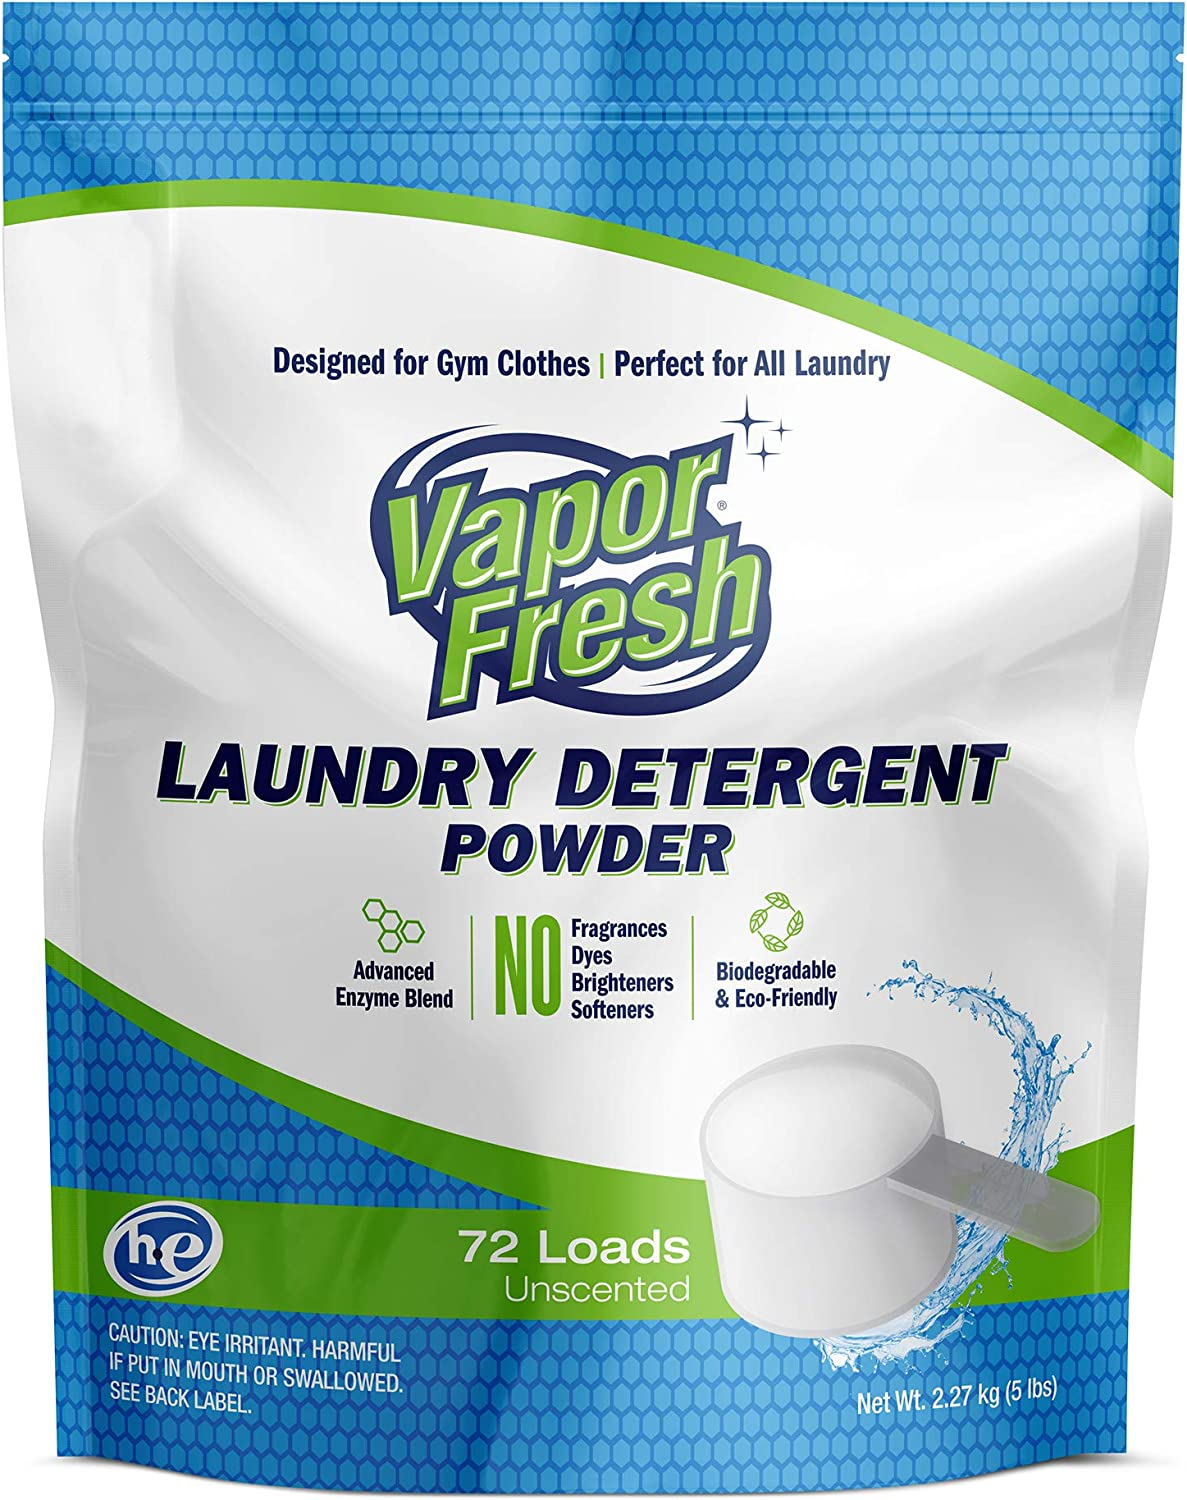 Vapor Fresh Laundry Detergent Powder - Unscented - Free and Clear - HE-Safe, 72 Loads